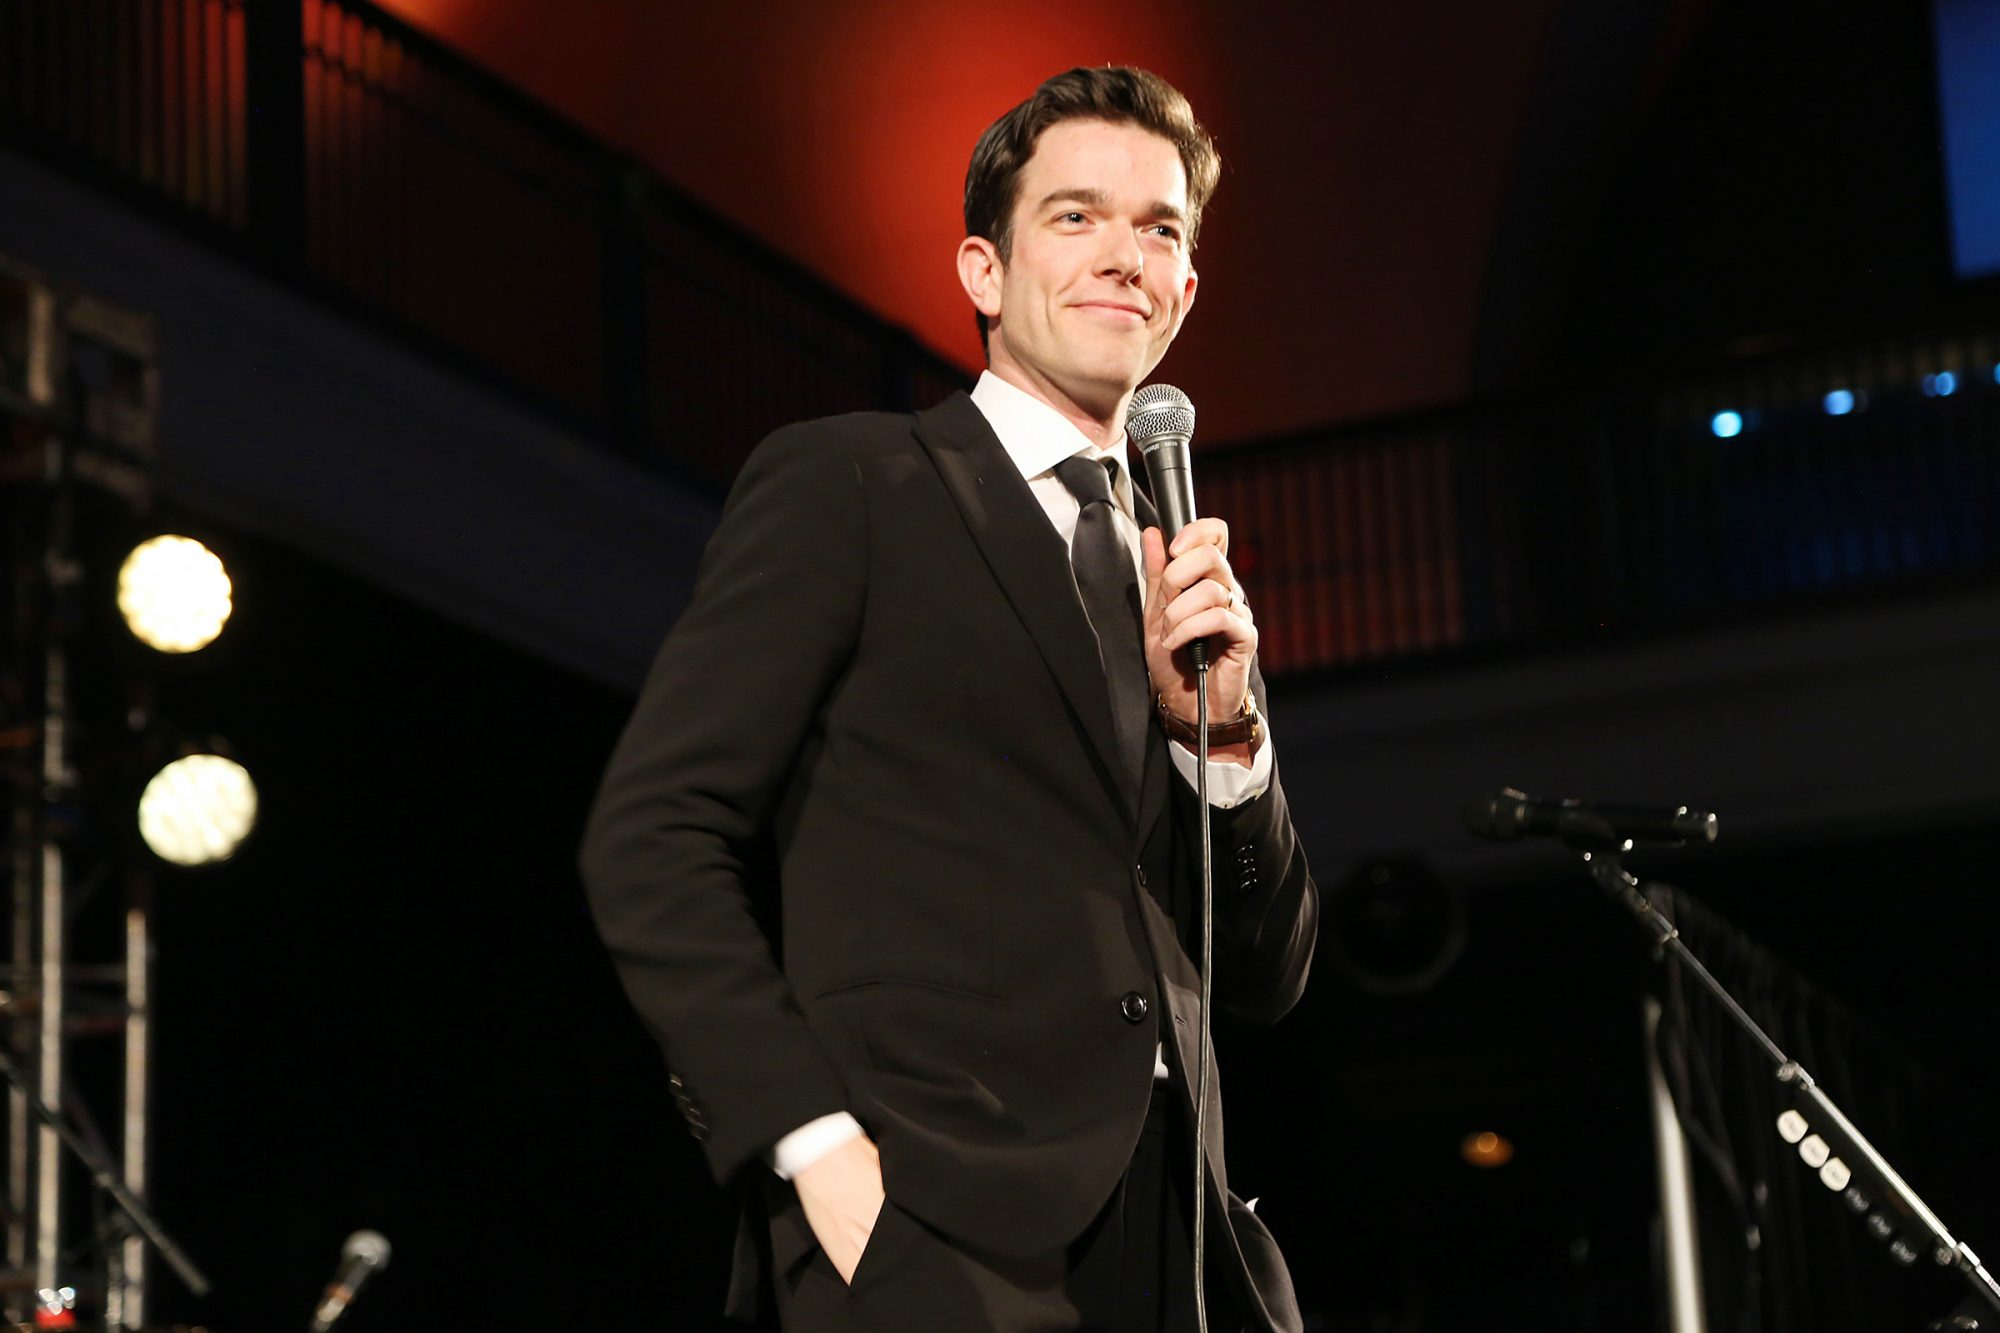 John Mulaney speaks onstage during The American Museum of Natural History's 2019 Museum Gala at American Museum of Natural History on November 21, 2019 in New York City